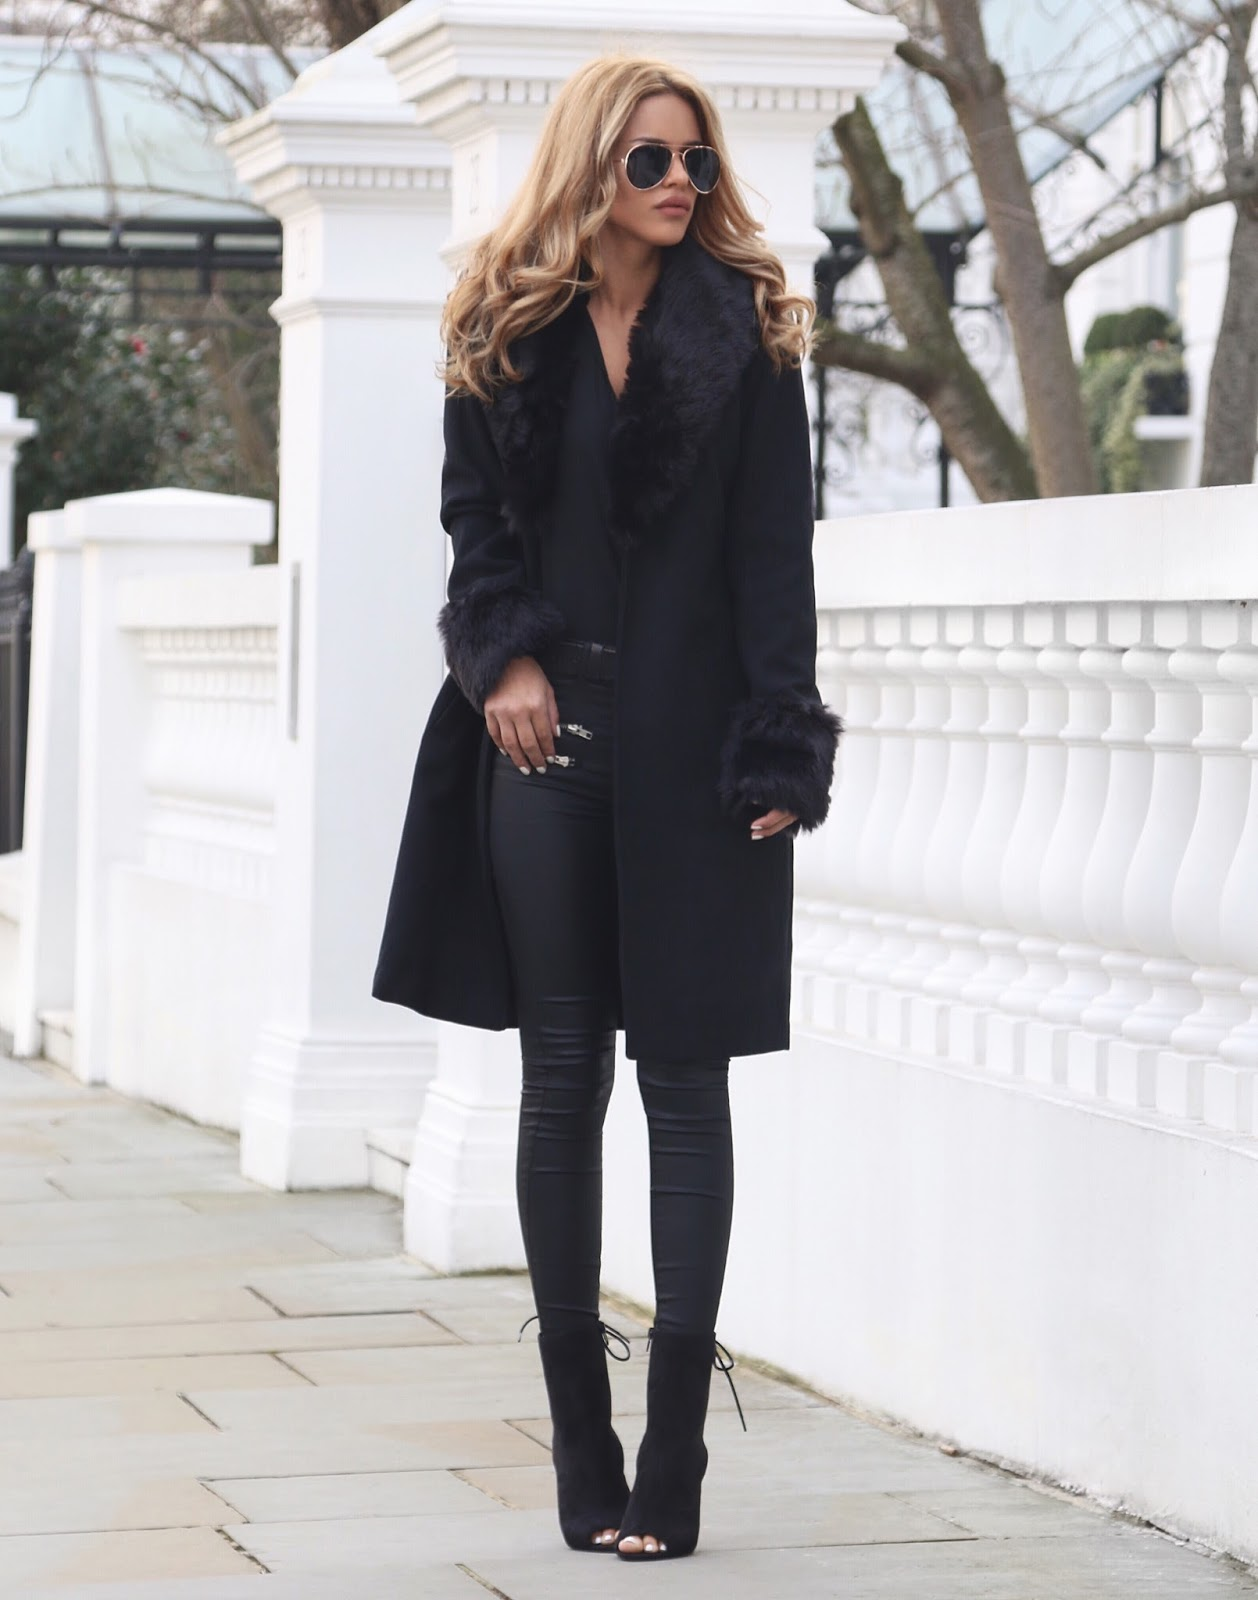 Wear a faux fur collar with an all black outfit to steal Nada Adelles glamorous monochrome